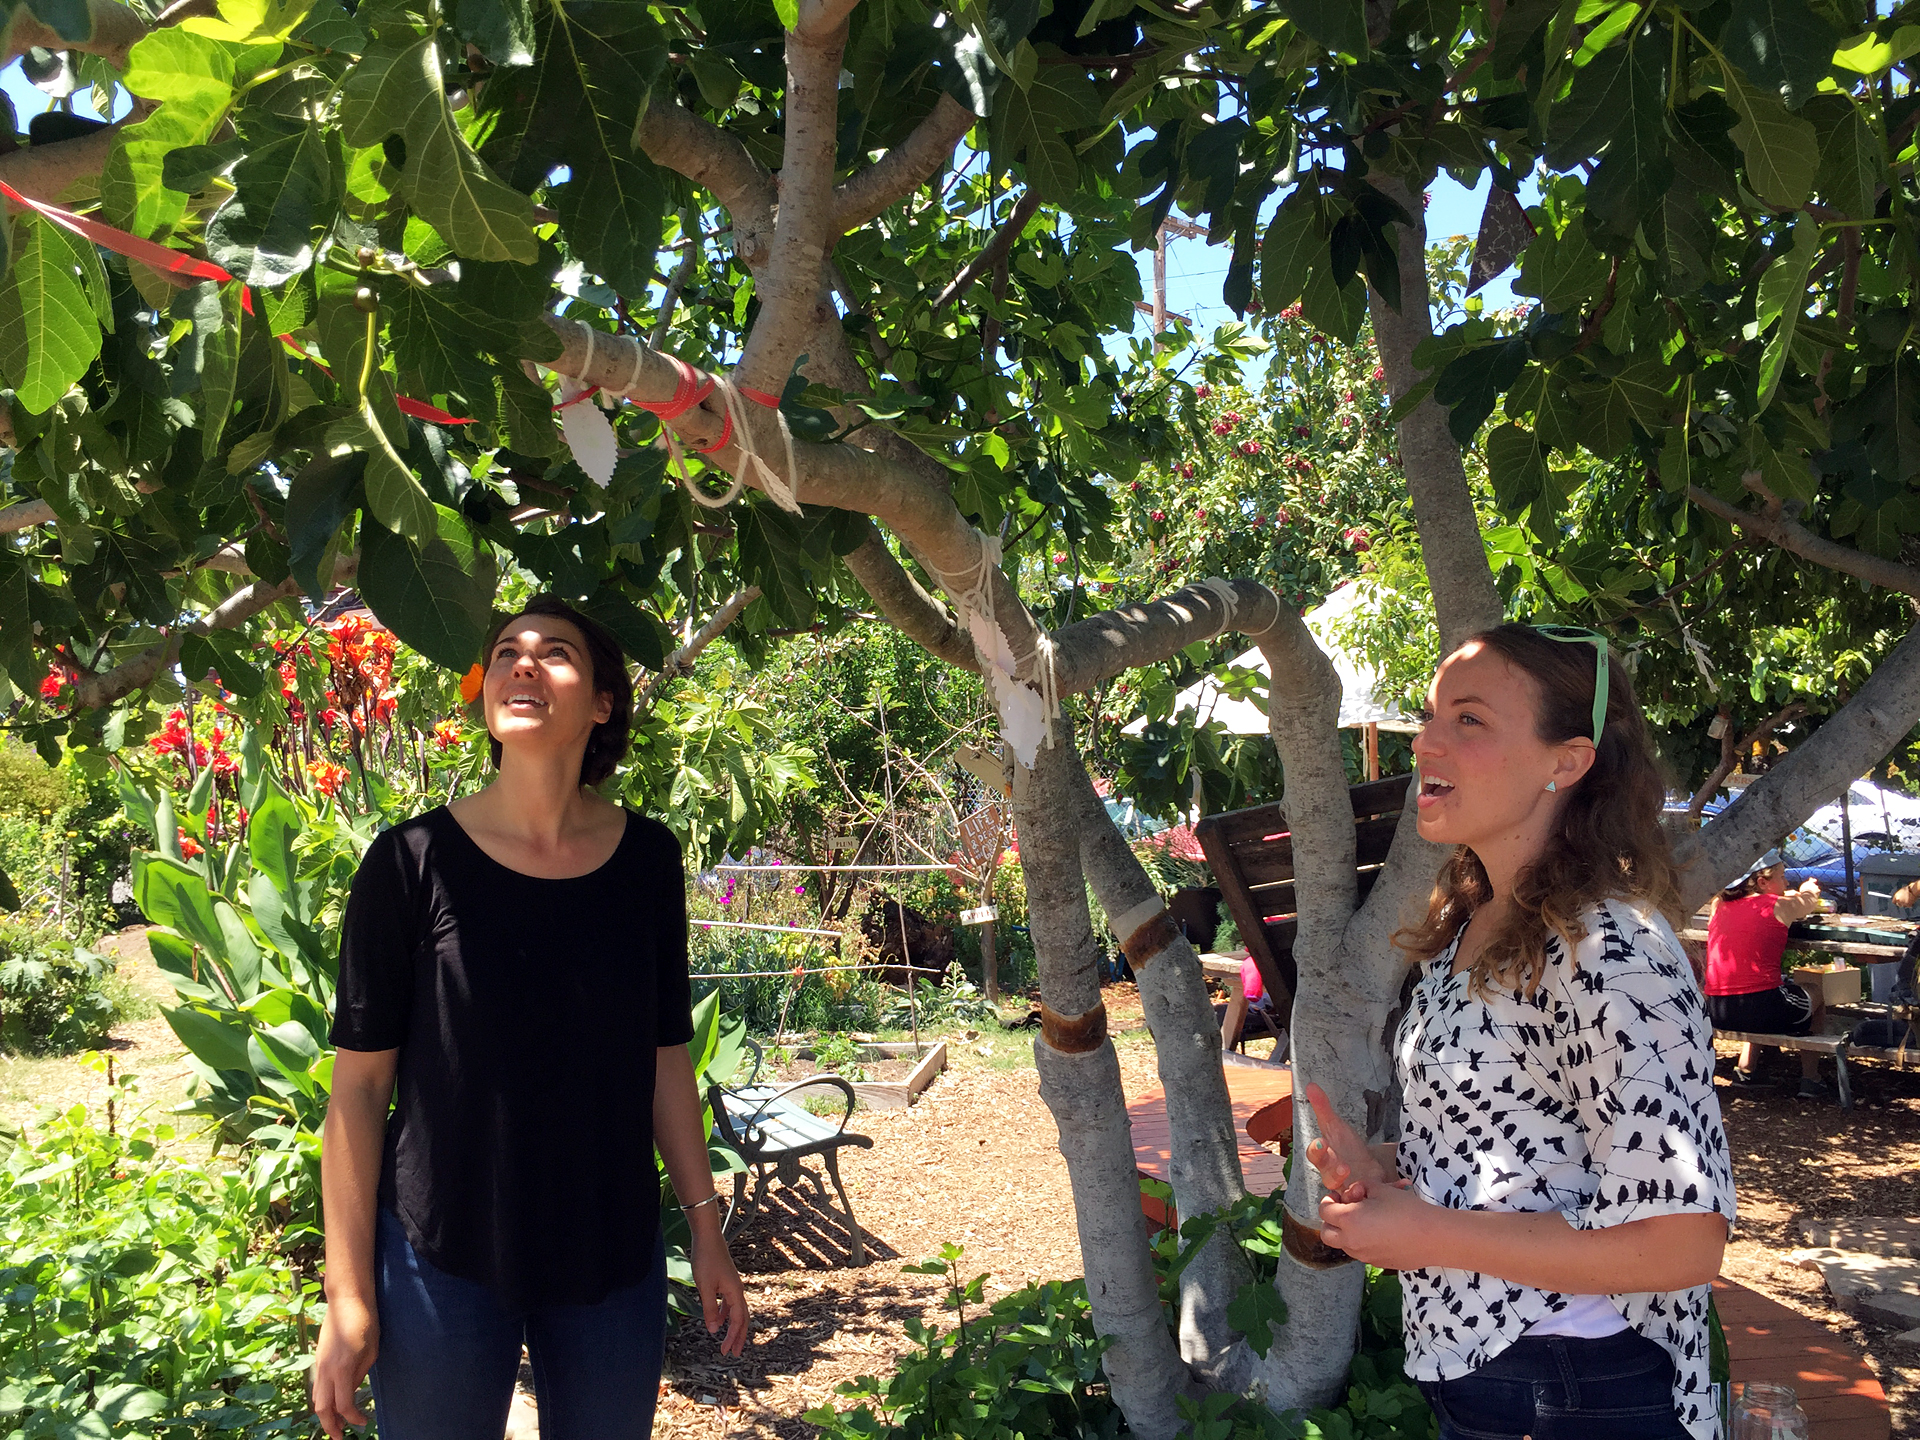 Kate Kaplan (left) and Sara Cate Jones are two of several SOGA garden managers. They are anxiously awaiting the first figs to ripen, which will happen in a matter of weeks.